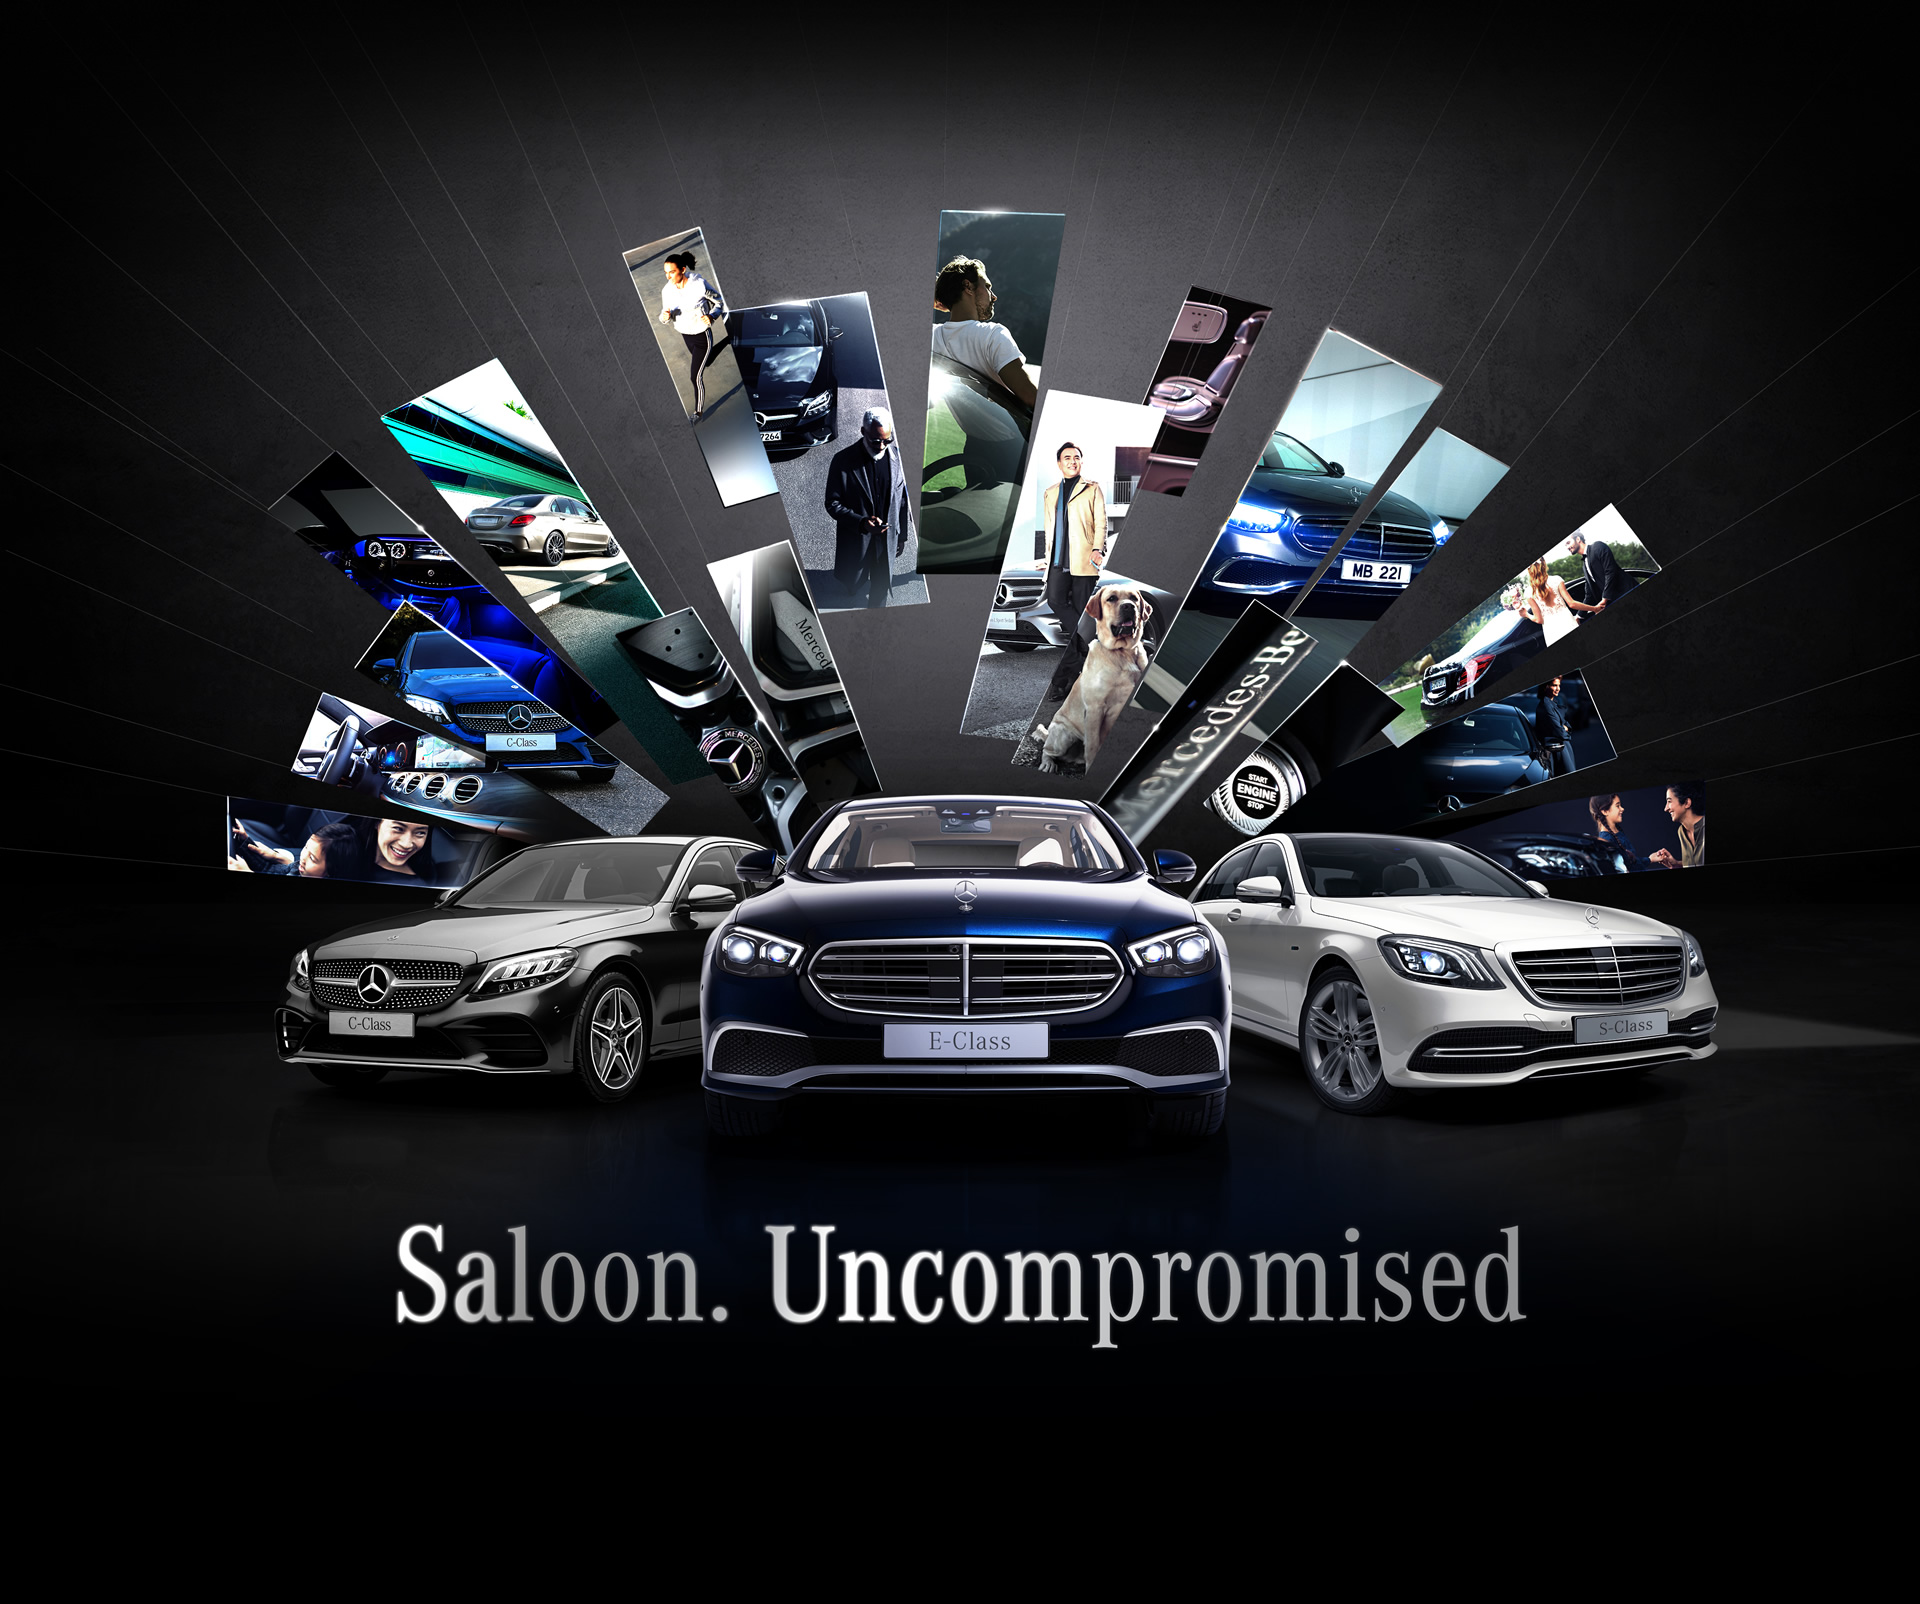 Saloon Uncompromised